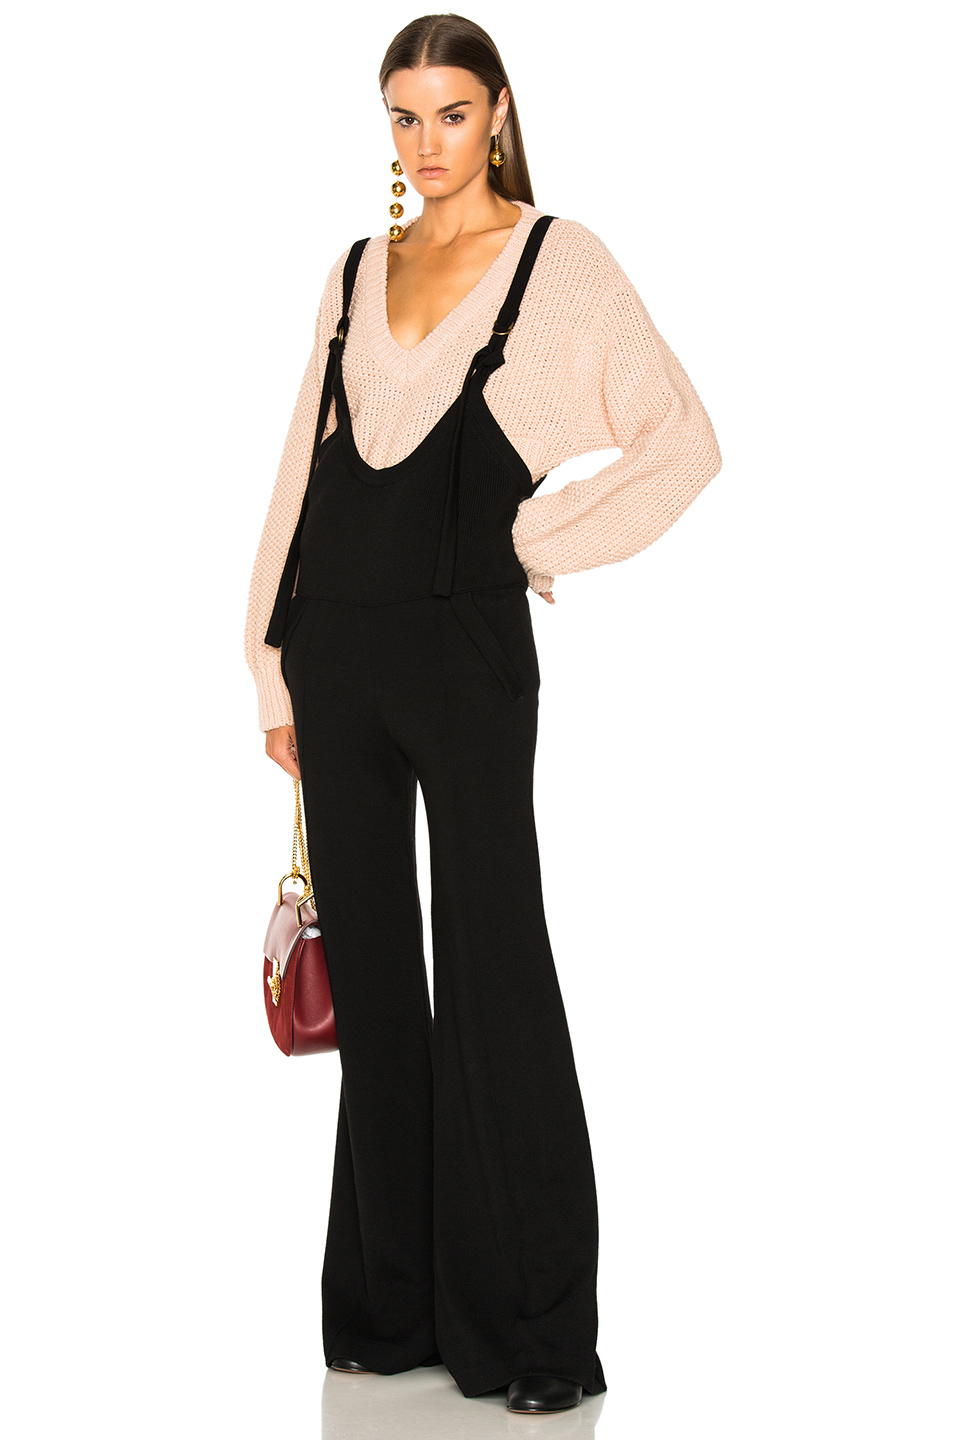 CHLOE Fluid Knit Jumpsuit